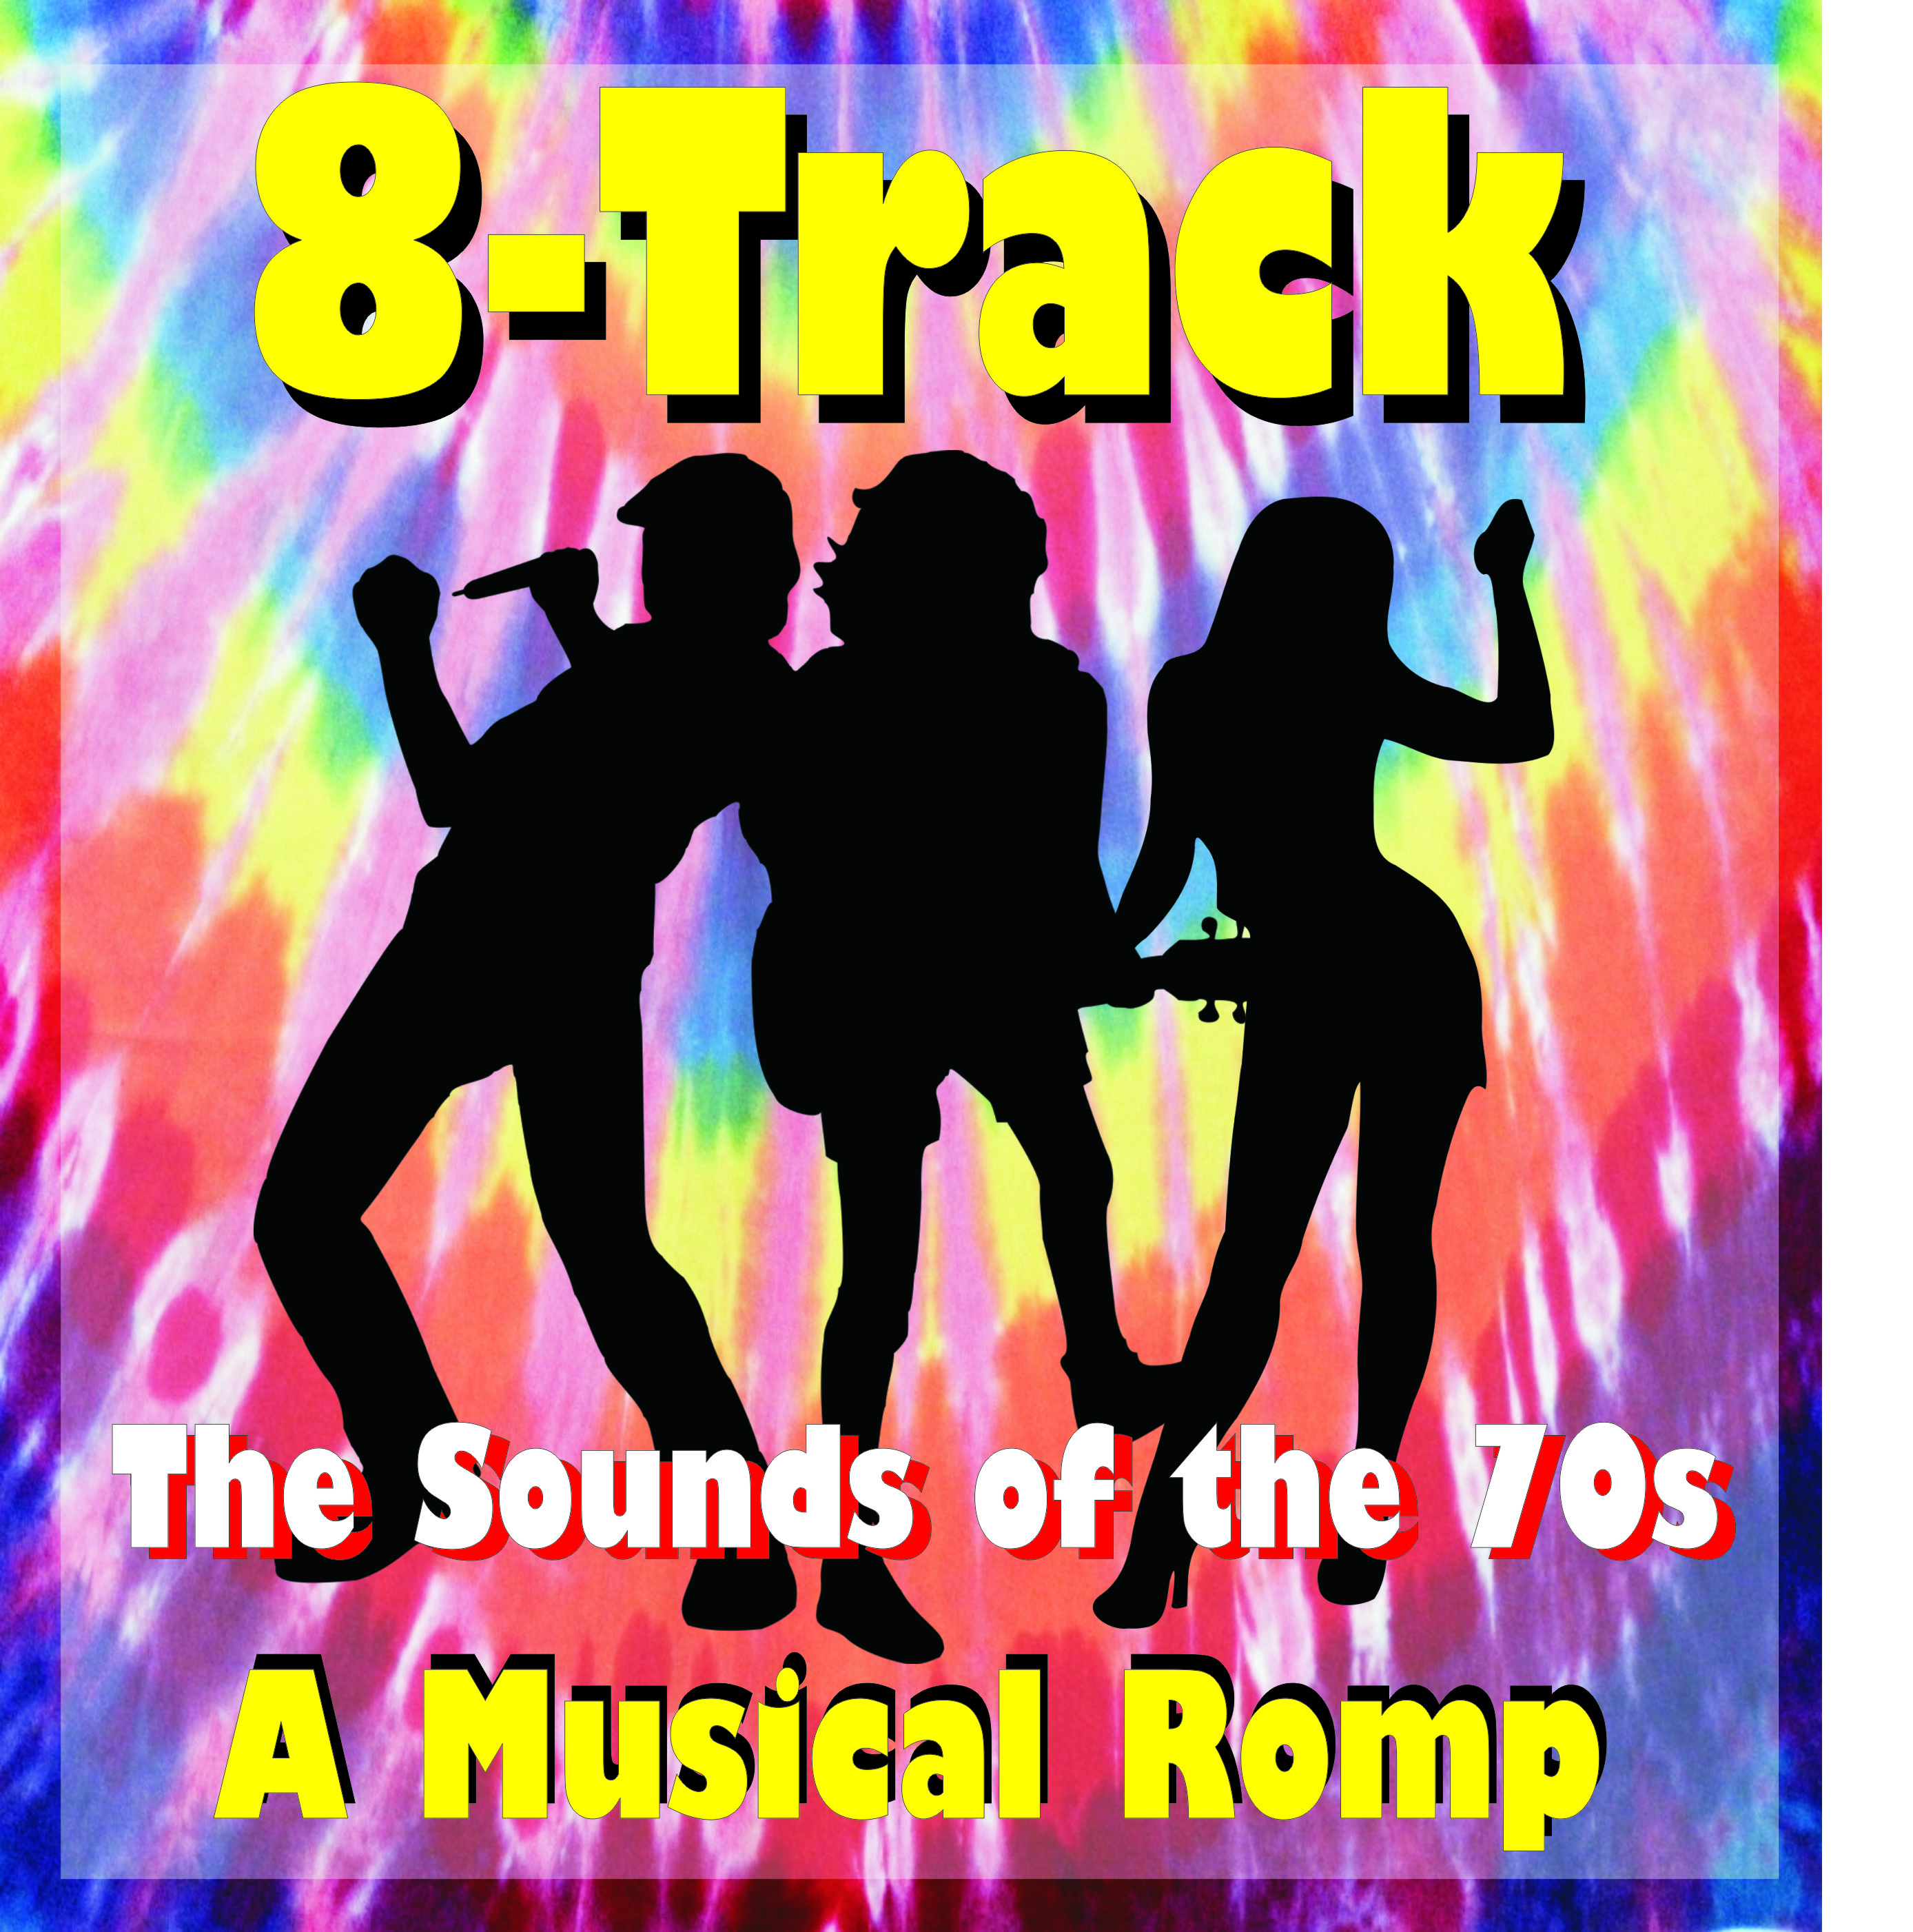 8 Track: The Sounds of the 70s